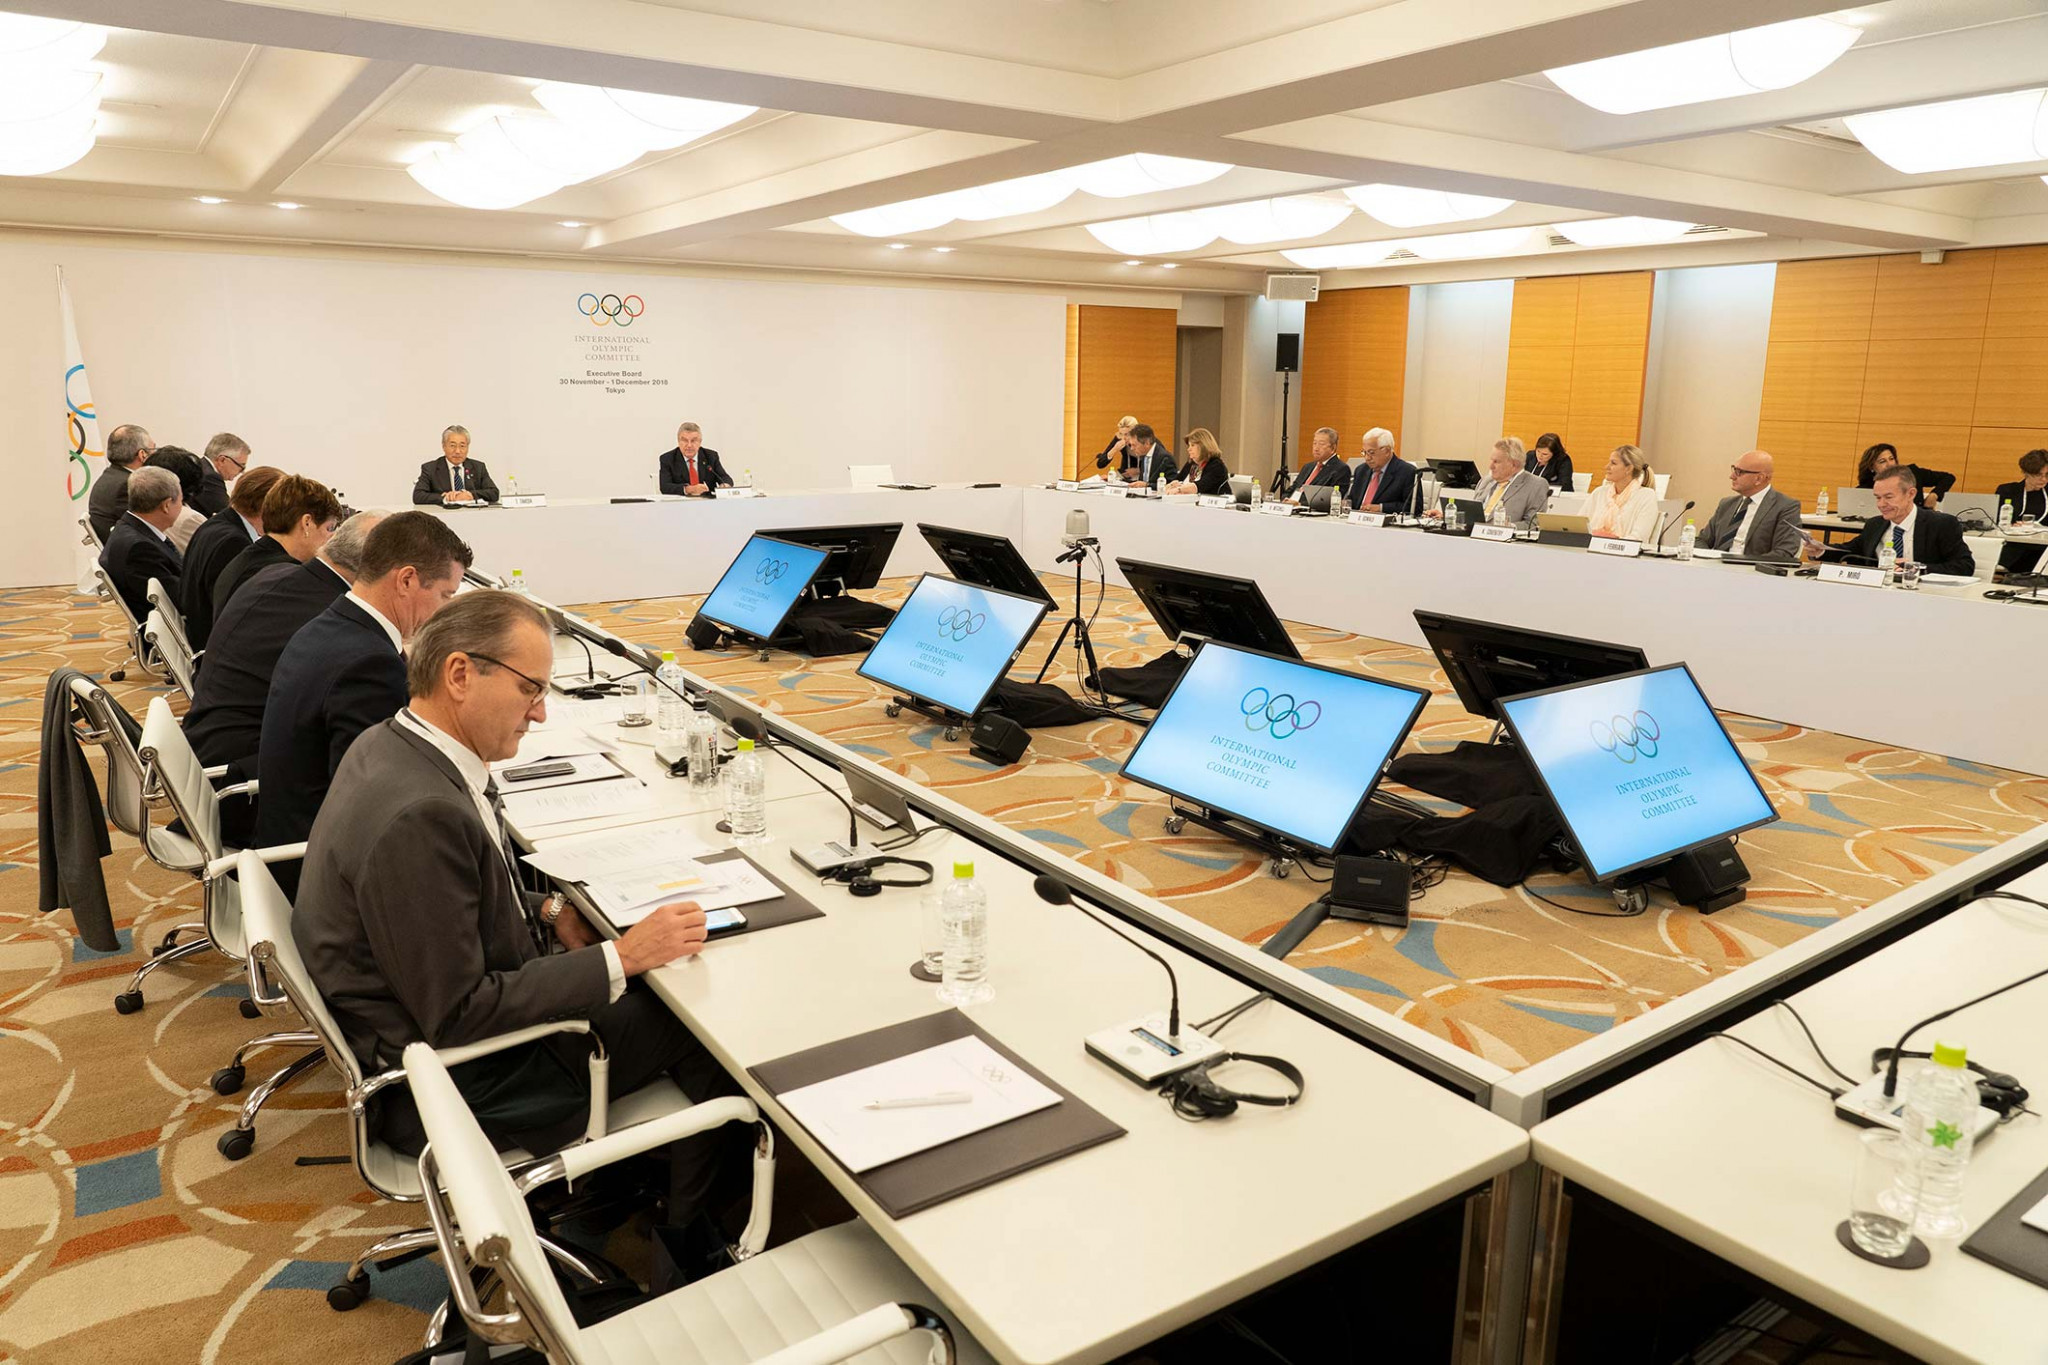 The crisis within AIBA is set to be the main talking point at the IOC Executive Board meeting this week ©IOC